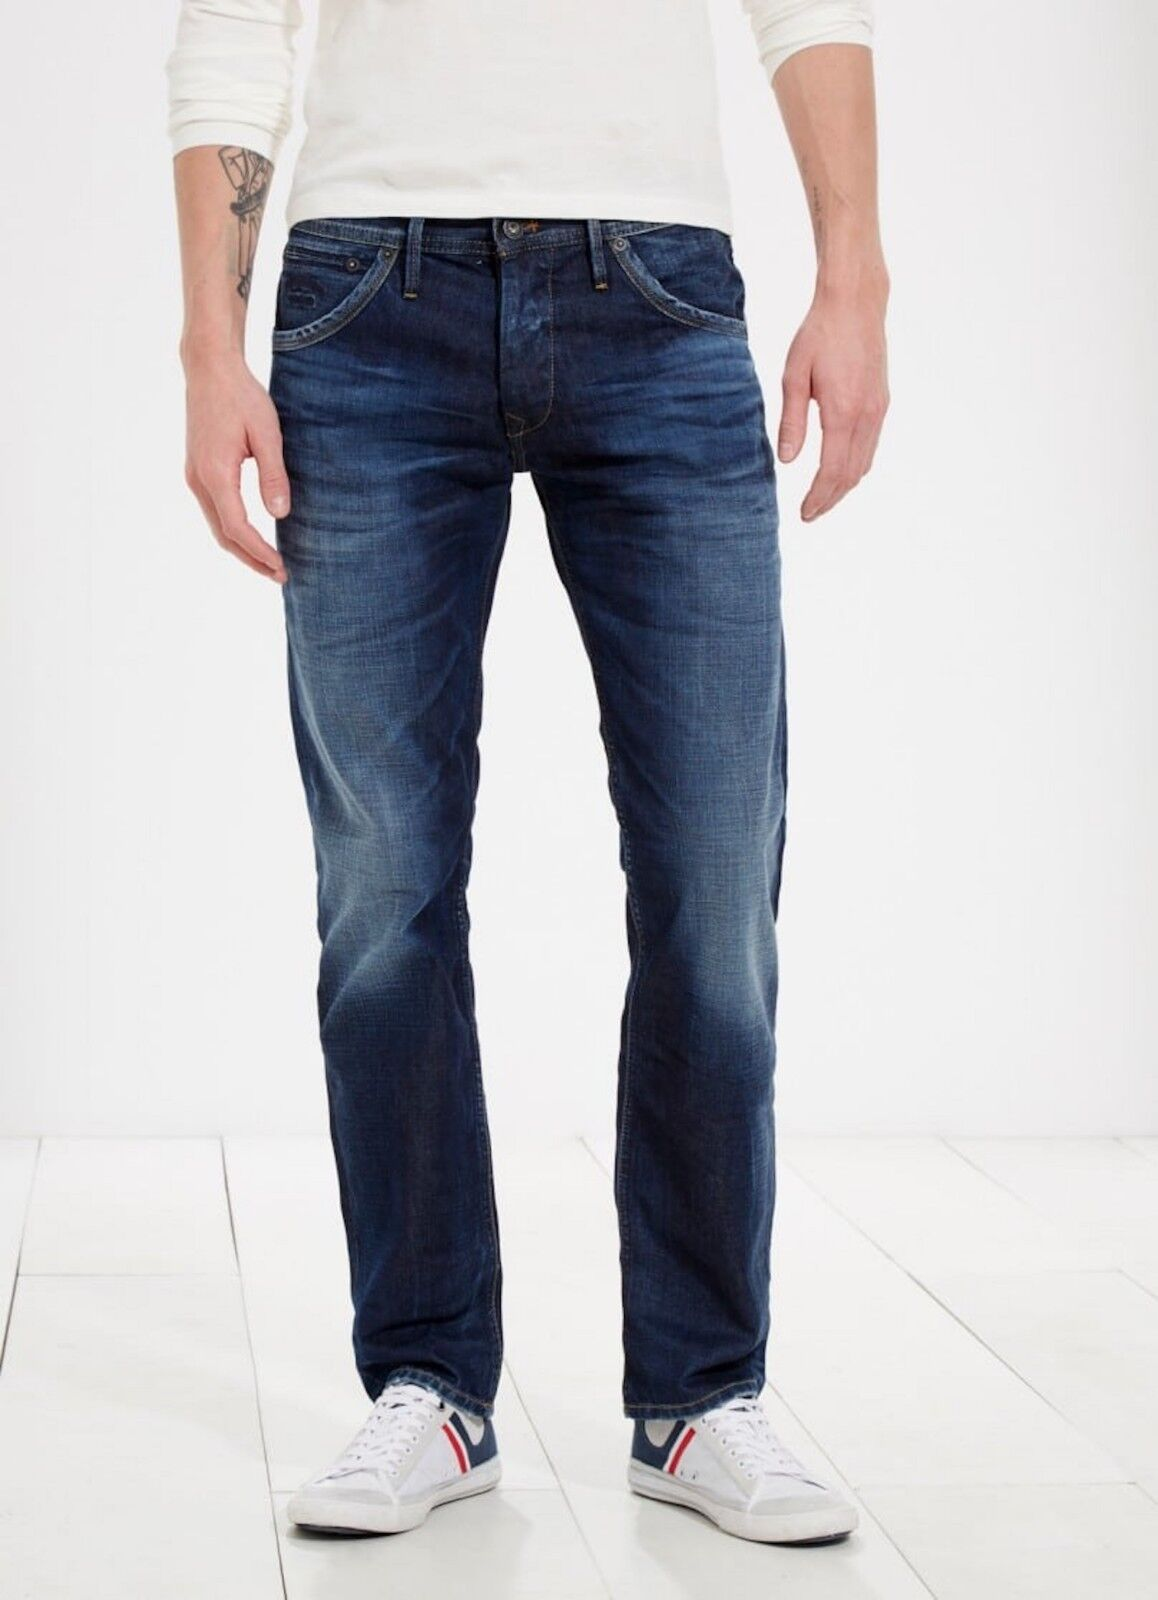 BNWT PEPEJEANS  HOXTON  STRAIGHT FIT LOW WAIST blueE STRECH JEANS - W40  X L36